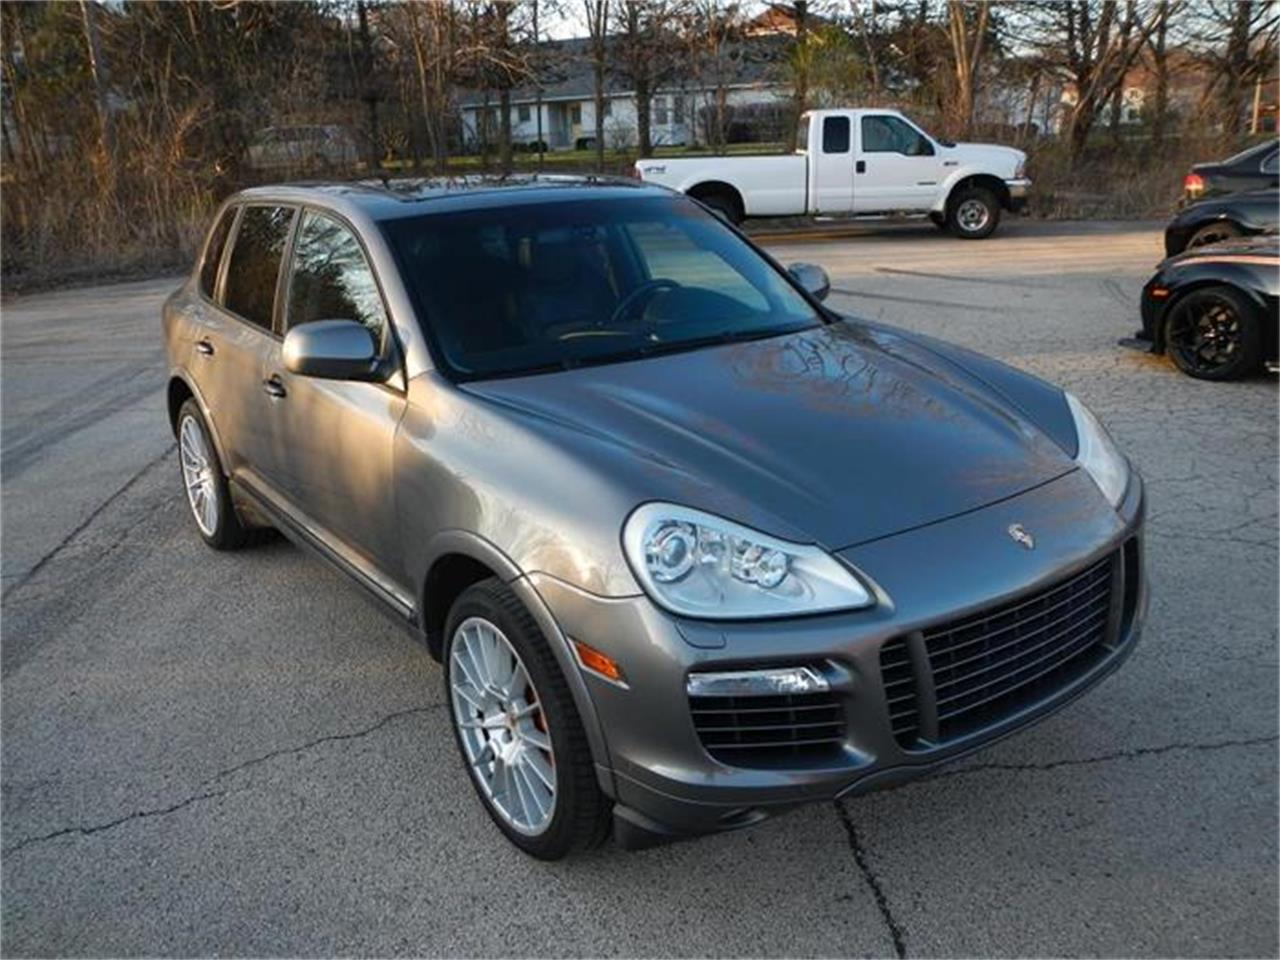 Large Picture of 2009 Porsche Cayenne located in St. Charles Illinois - $53,500.00 Offered by Nickey - H7S4